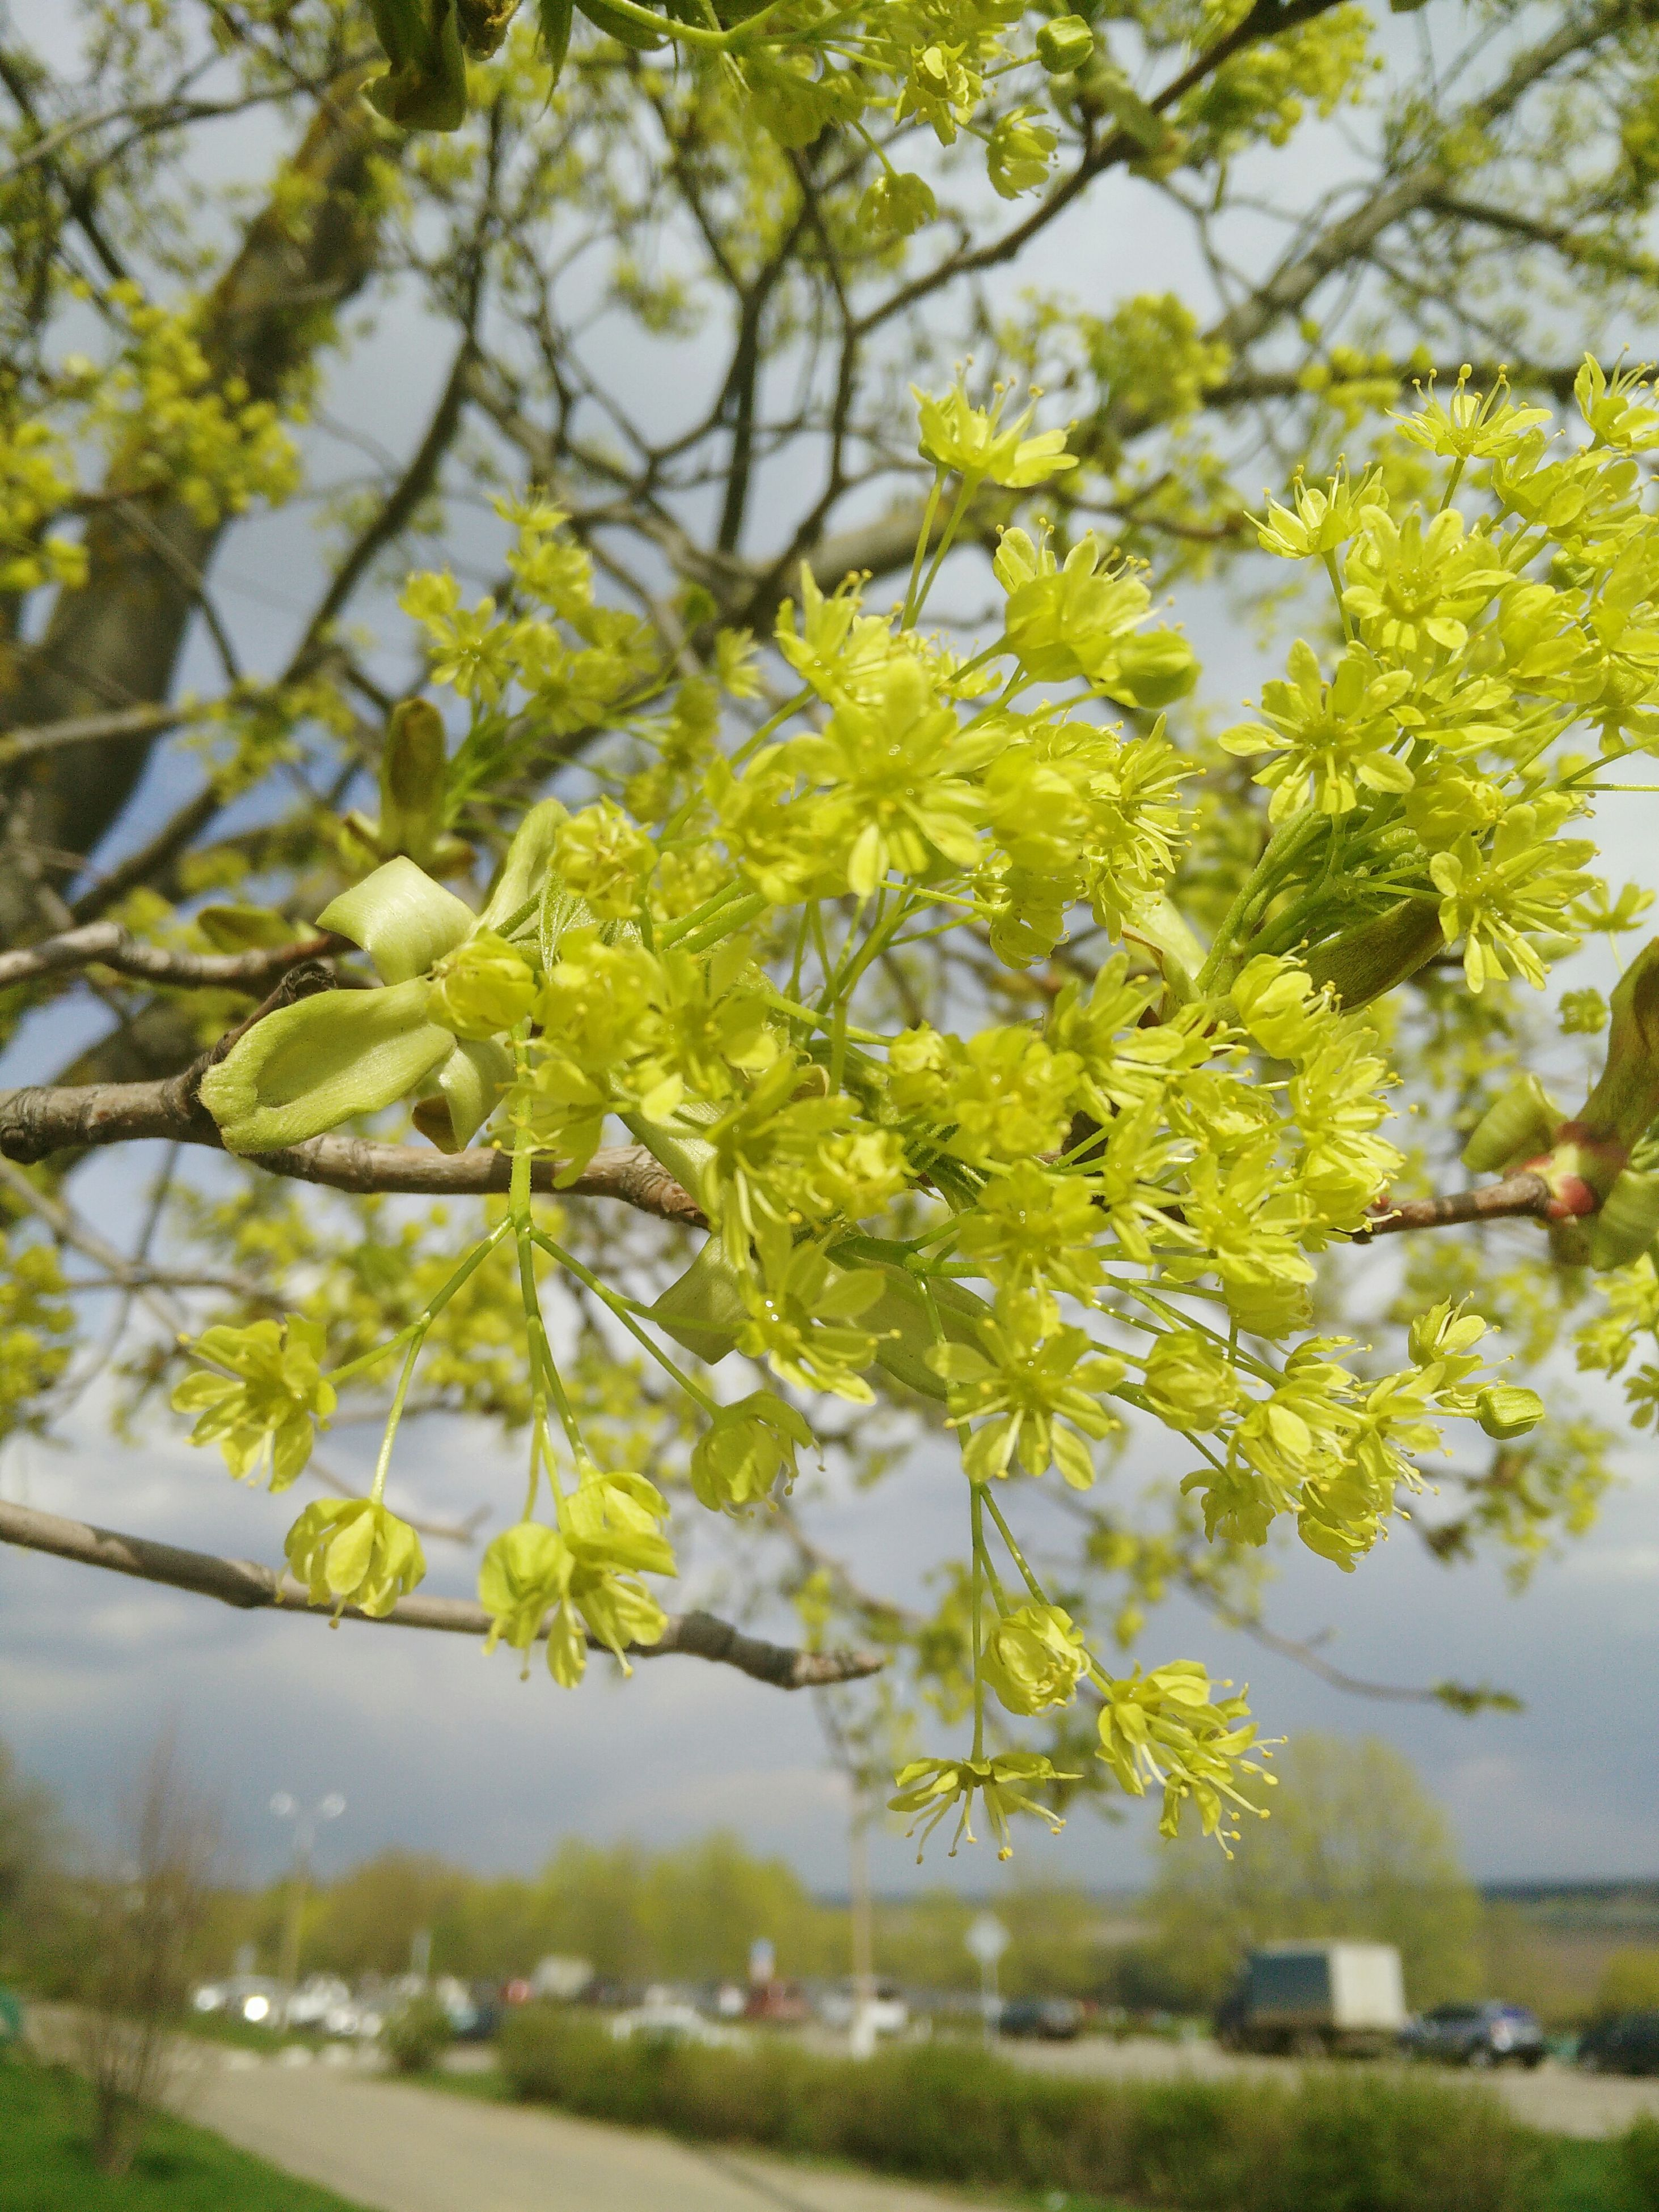 tree, flower, growth, branch, freshness, nature, fragility, beauty in nature, green color, plant, focus on foreground, day, leaf, blossom, sky, outdoors, park - man made space, close-up, blooming, no people